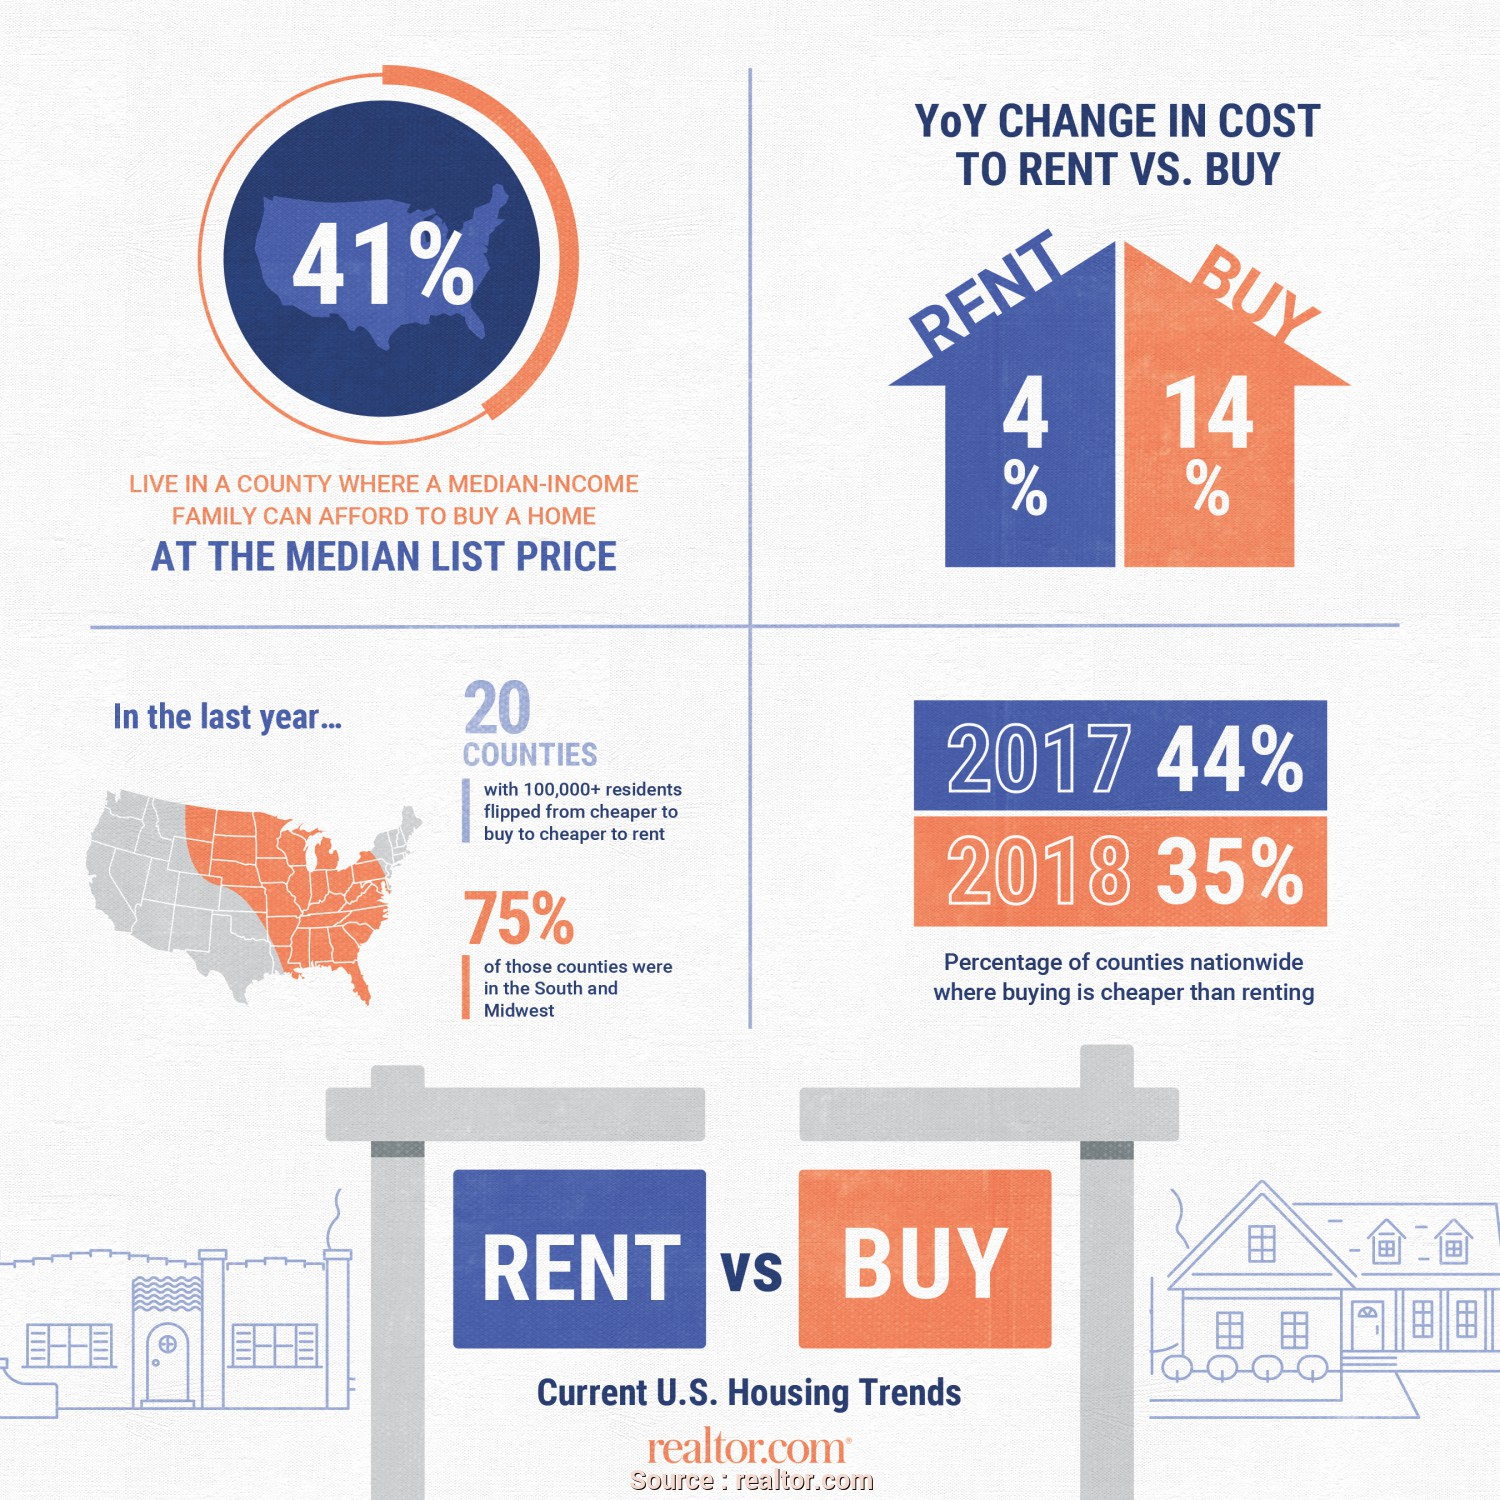 Q Molteni Lettings, Costoso July 2018 Rent Vs, Report: Home Prices Rise Three Times Faster